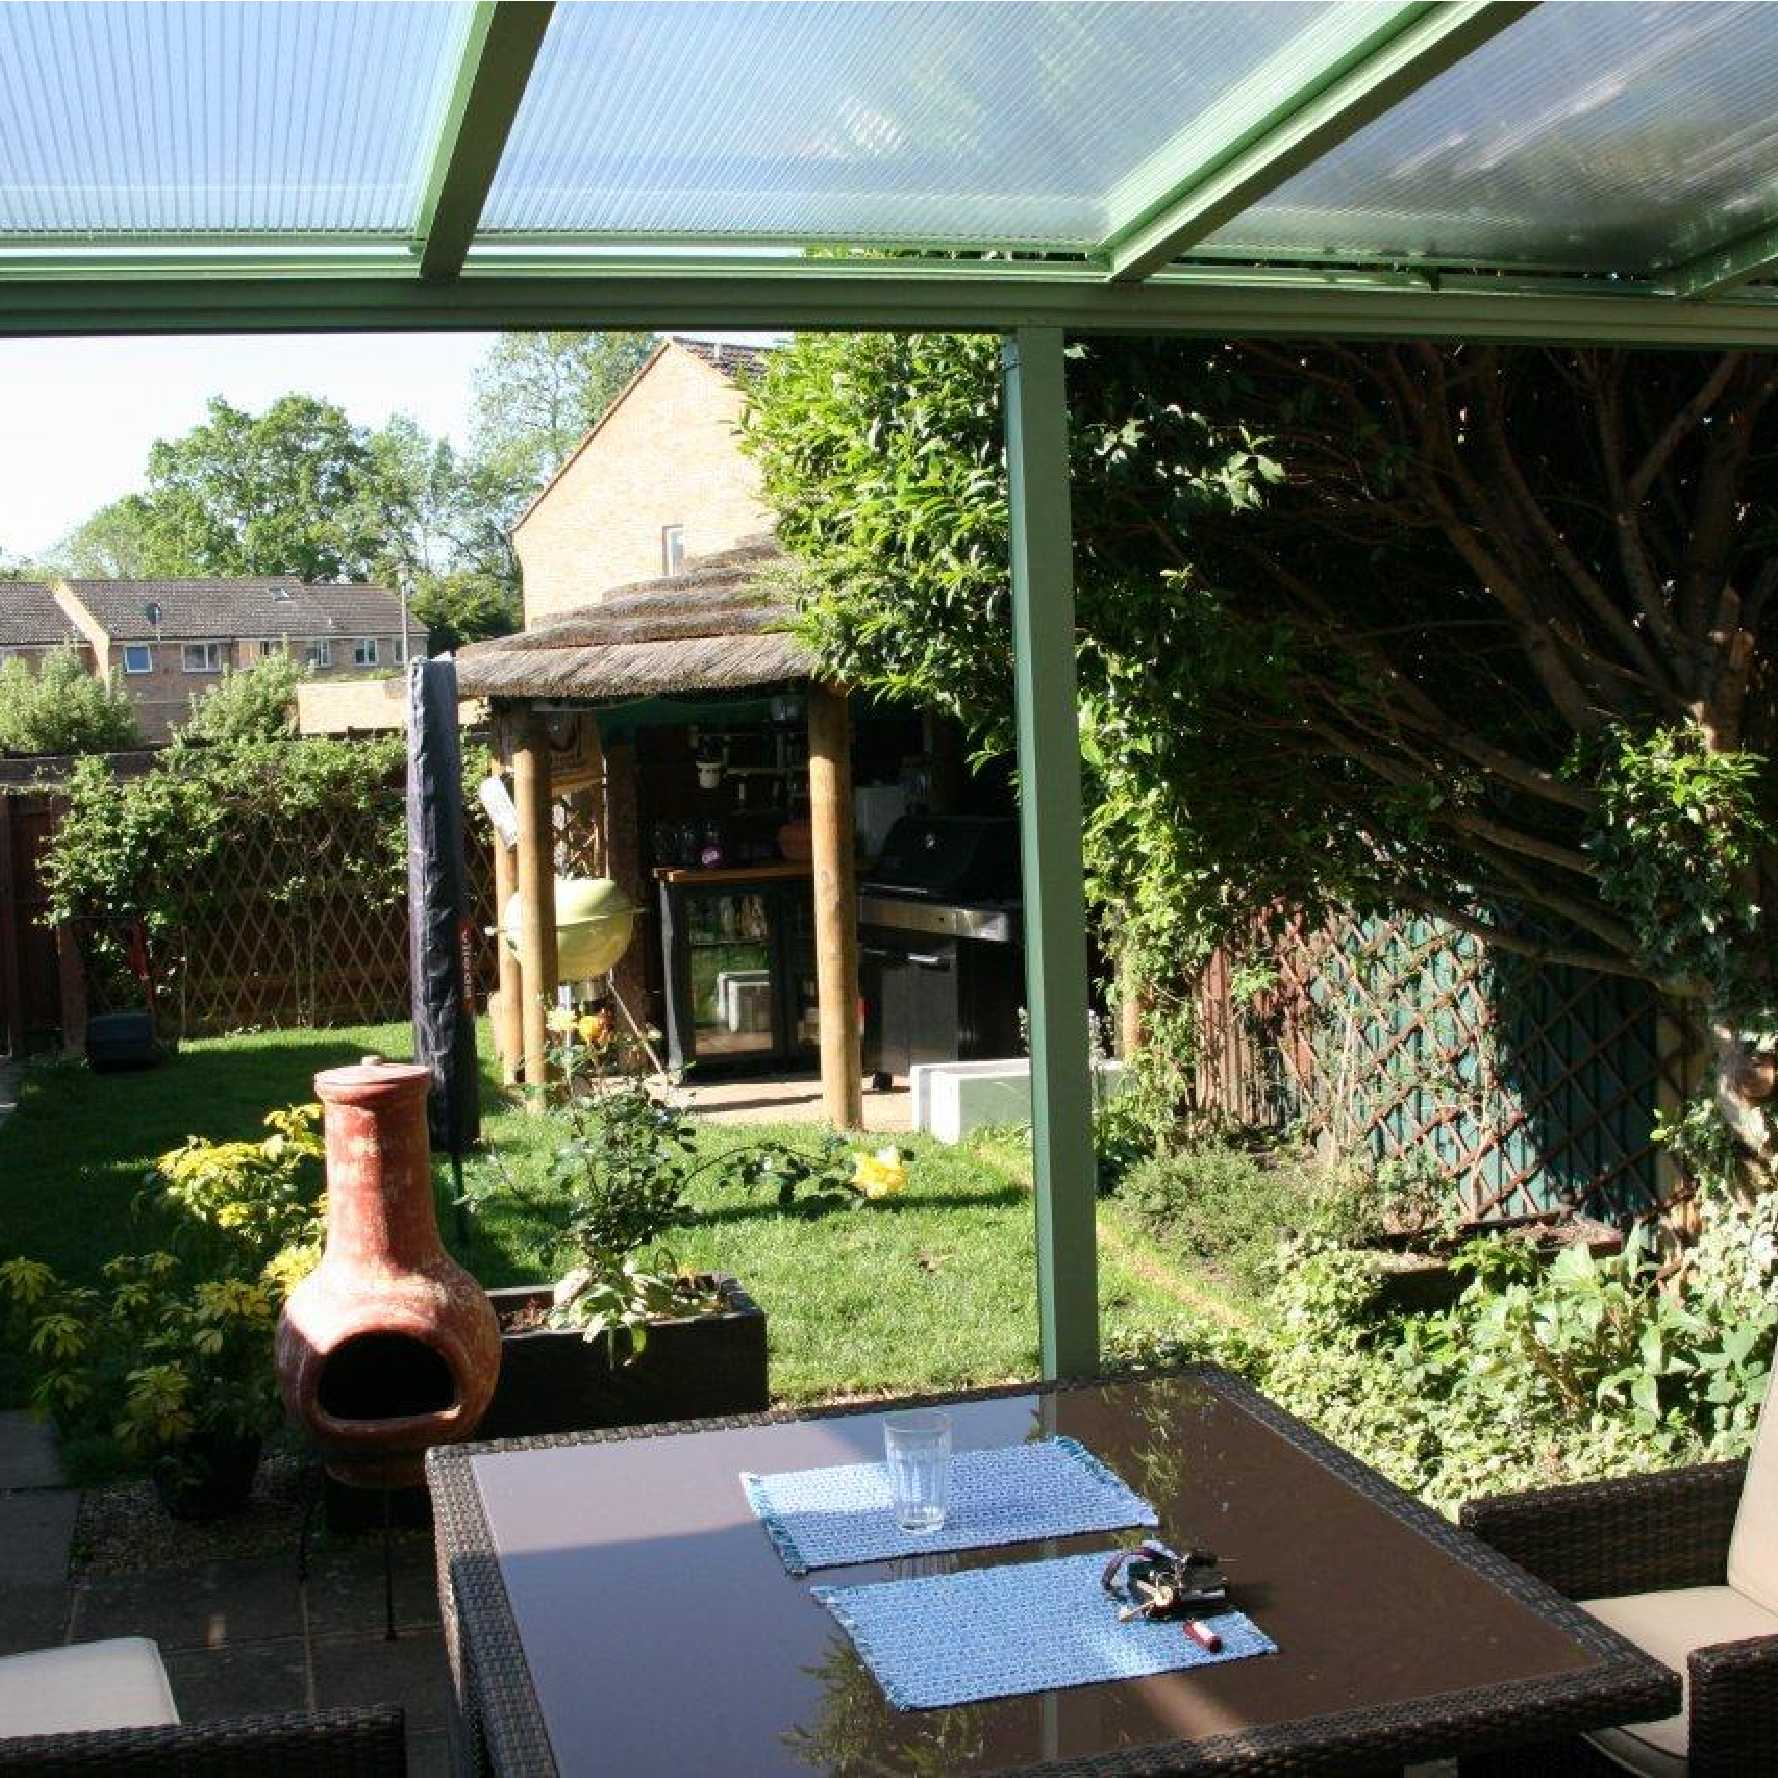 Affordable Omega Smart Lean-To Canopy with 16mm Polycarbonate Glazing - 9.2m (W) x 3.5m (P), (5) Supporting Posts